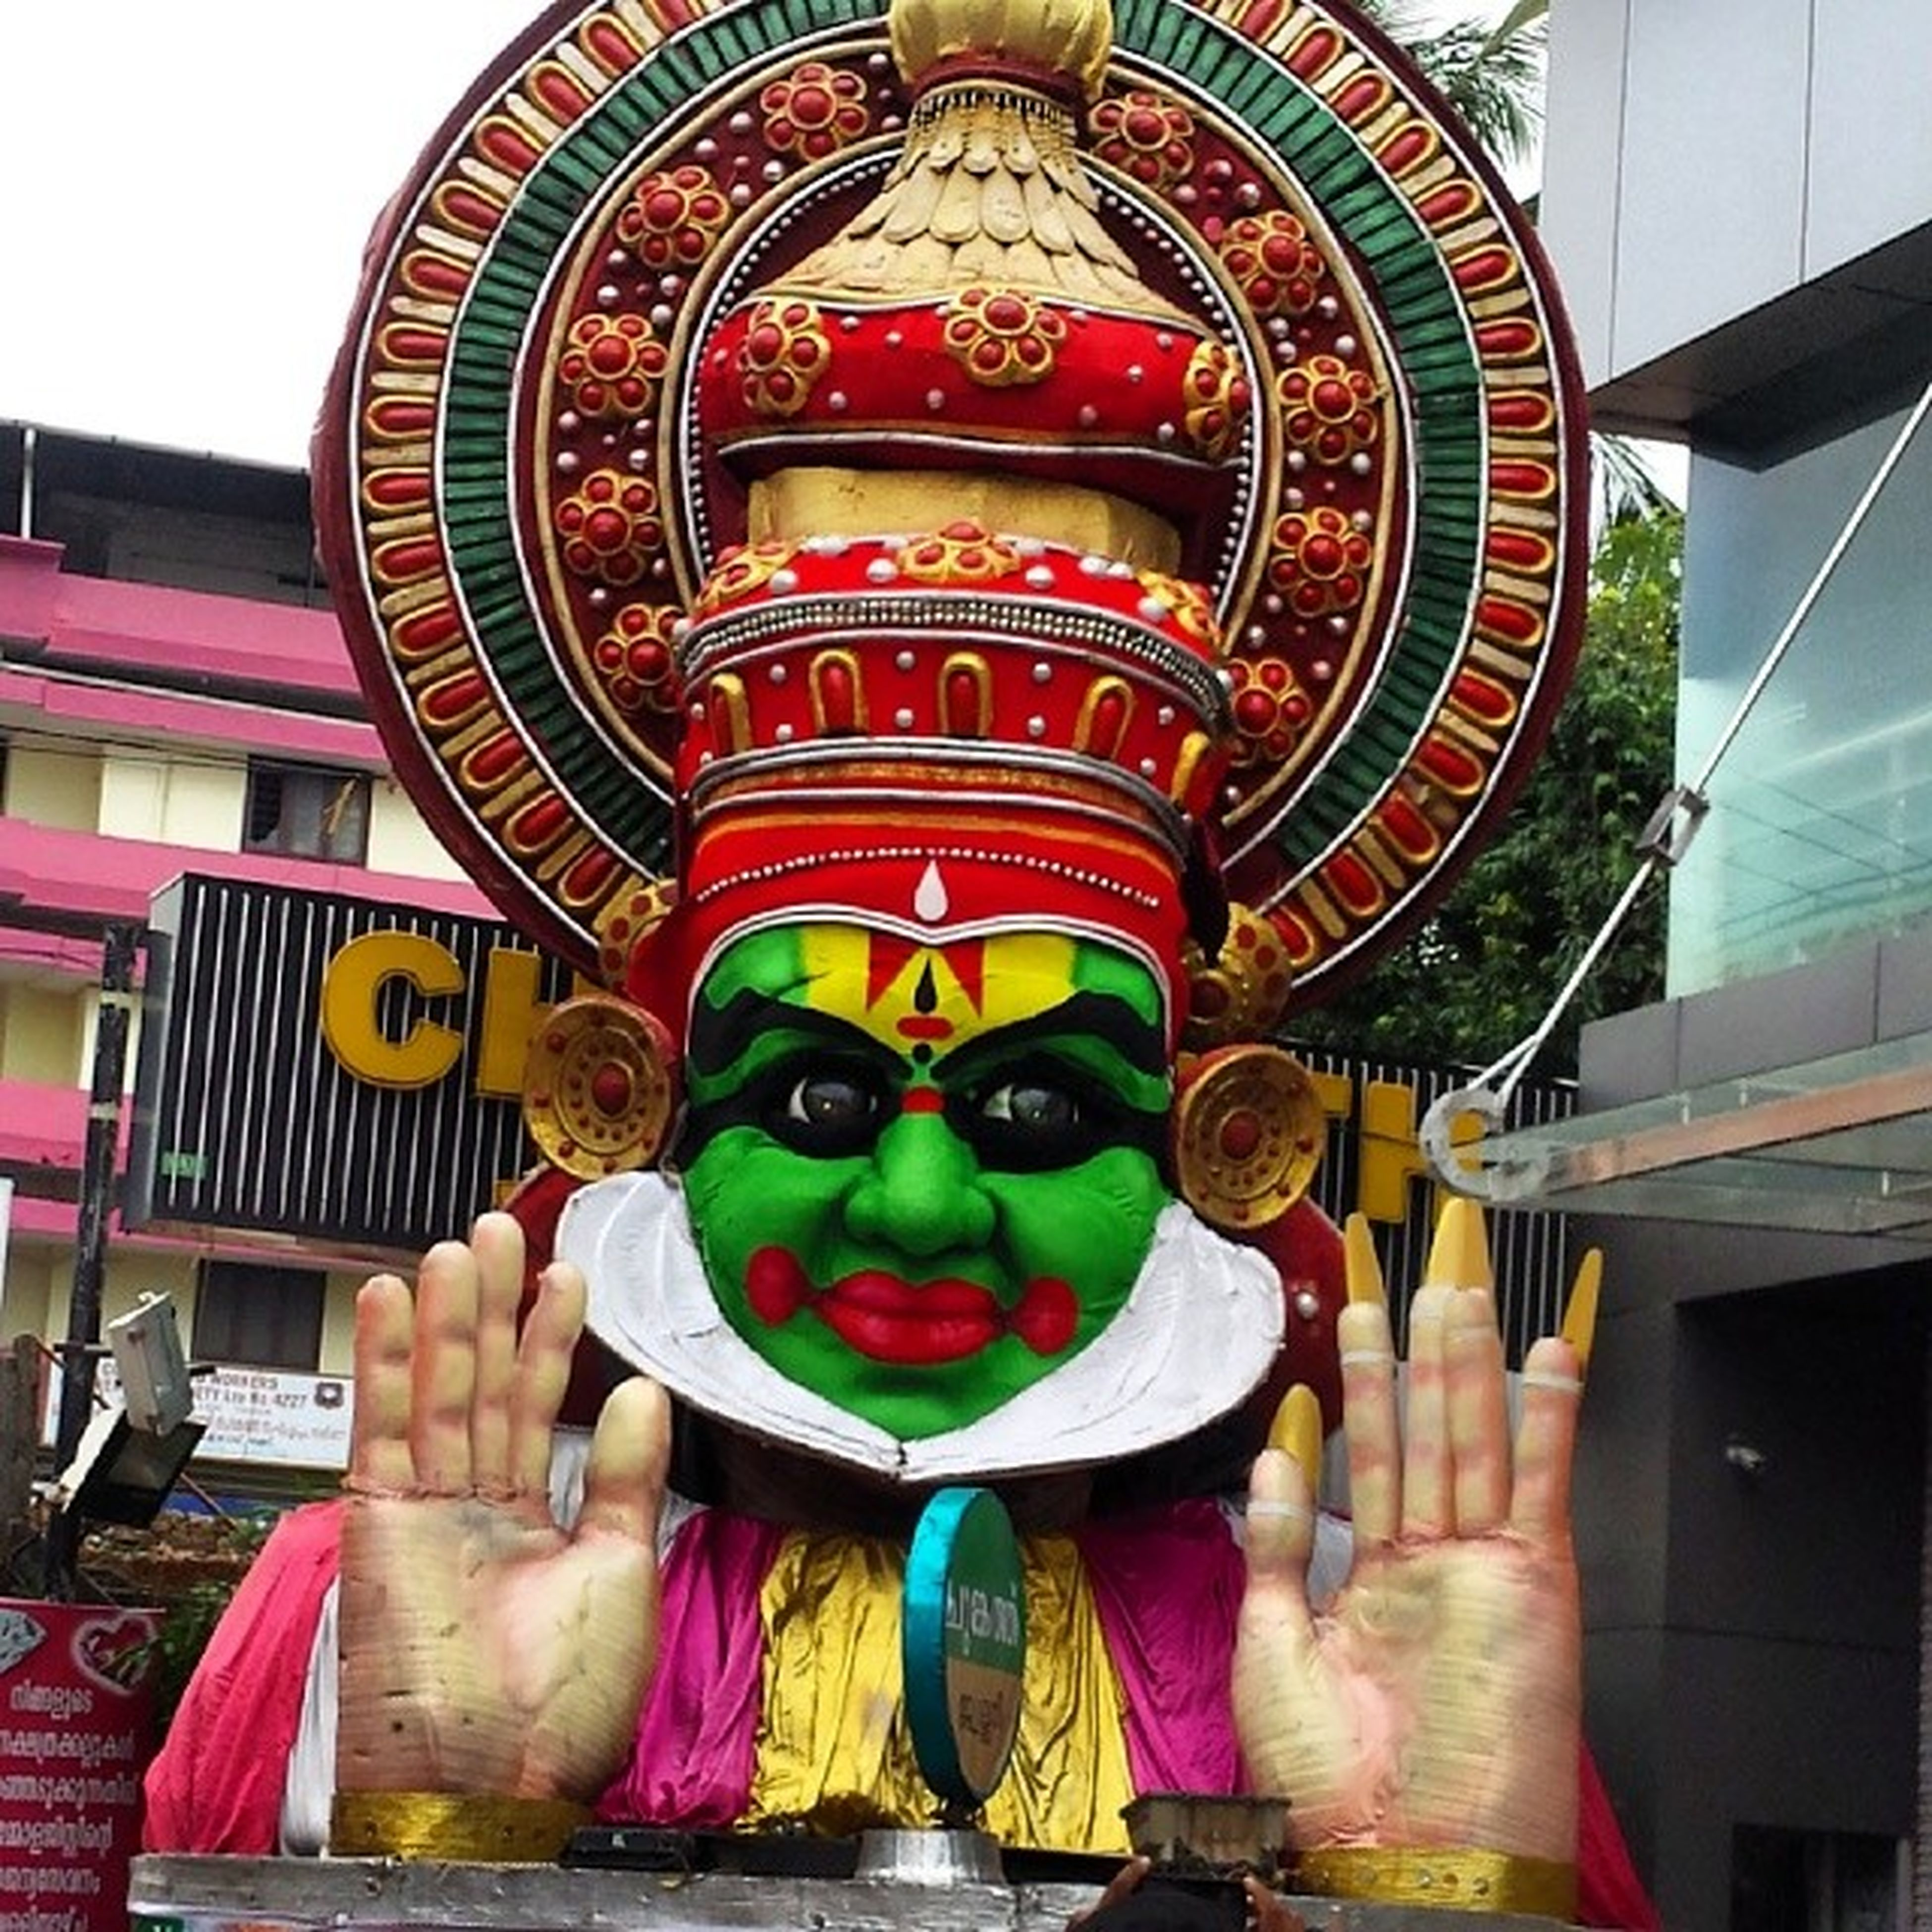 art, architecture, art and craft, built structure, place of worship, creativity, religion, spirituality, human representation, statue, building exterior, sculpture, temple - building, low angle view, multi colored, indoors, animal representation